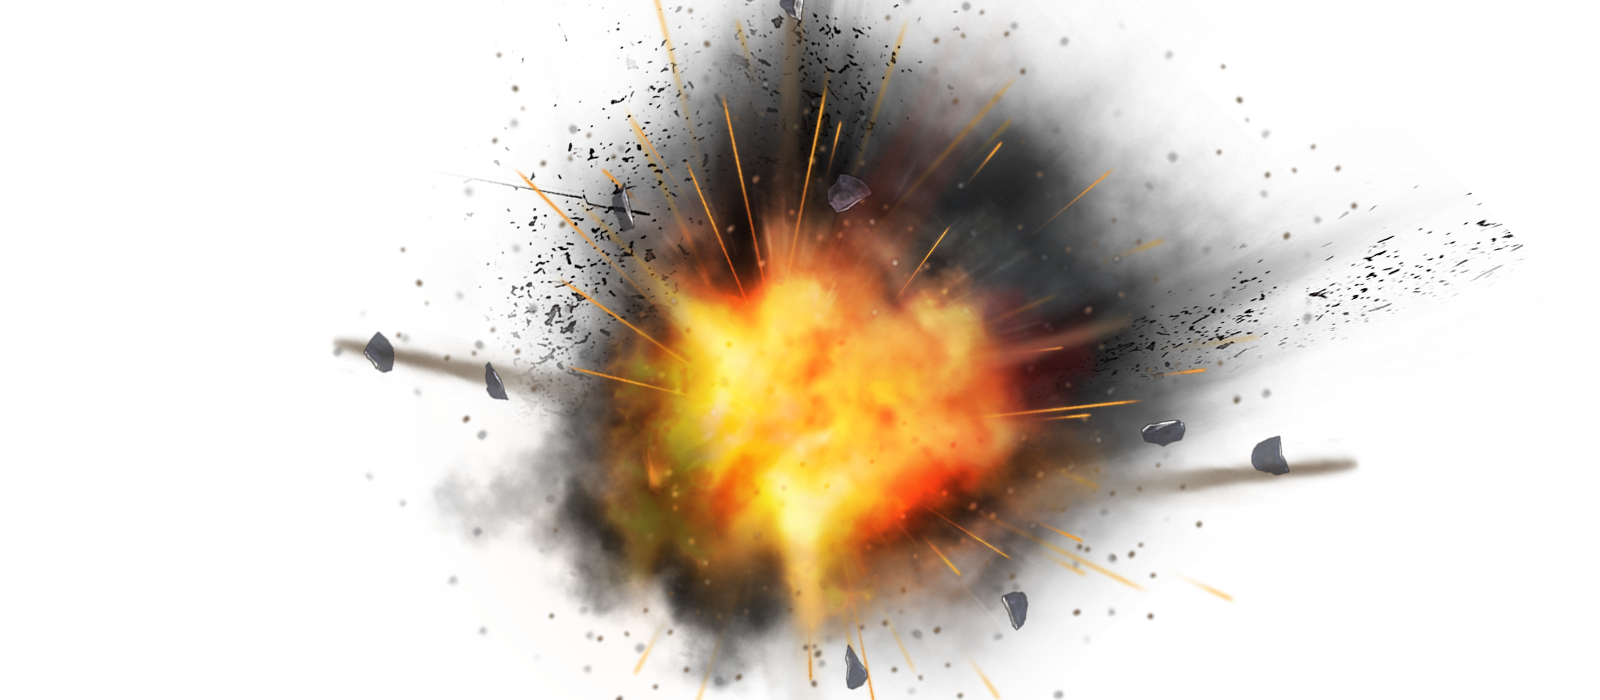 Transparent explosions car. Explosion png pictures free